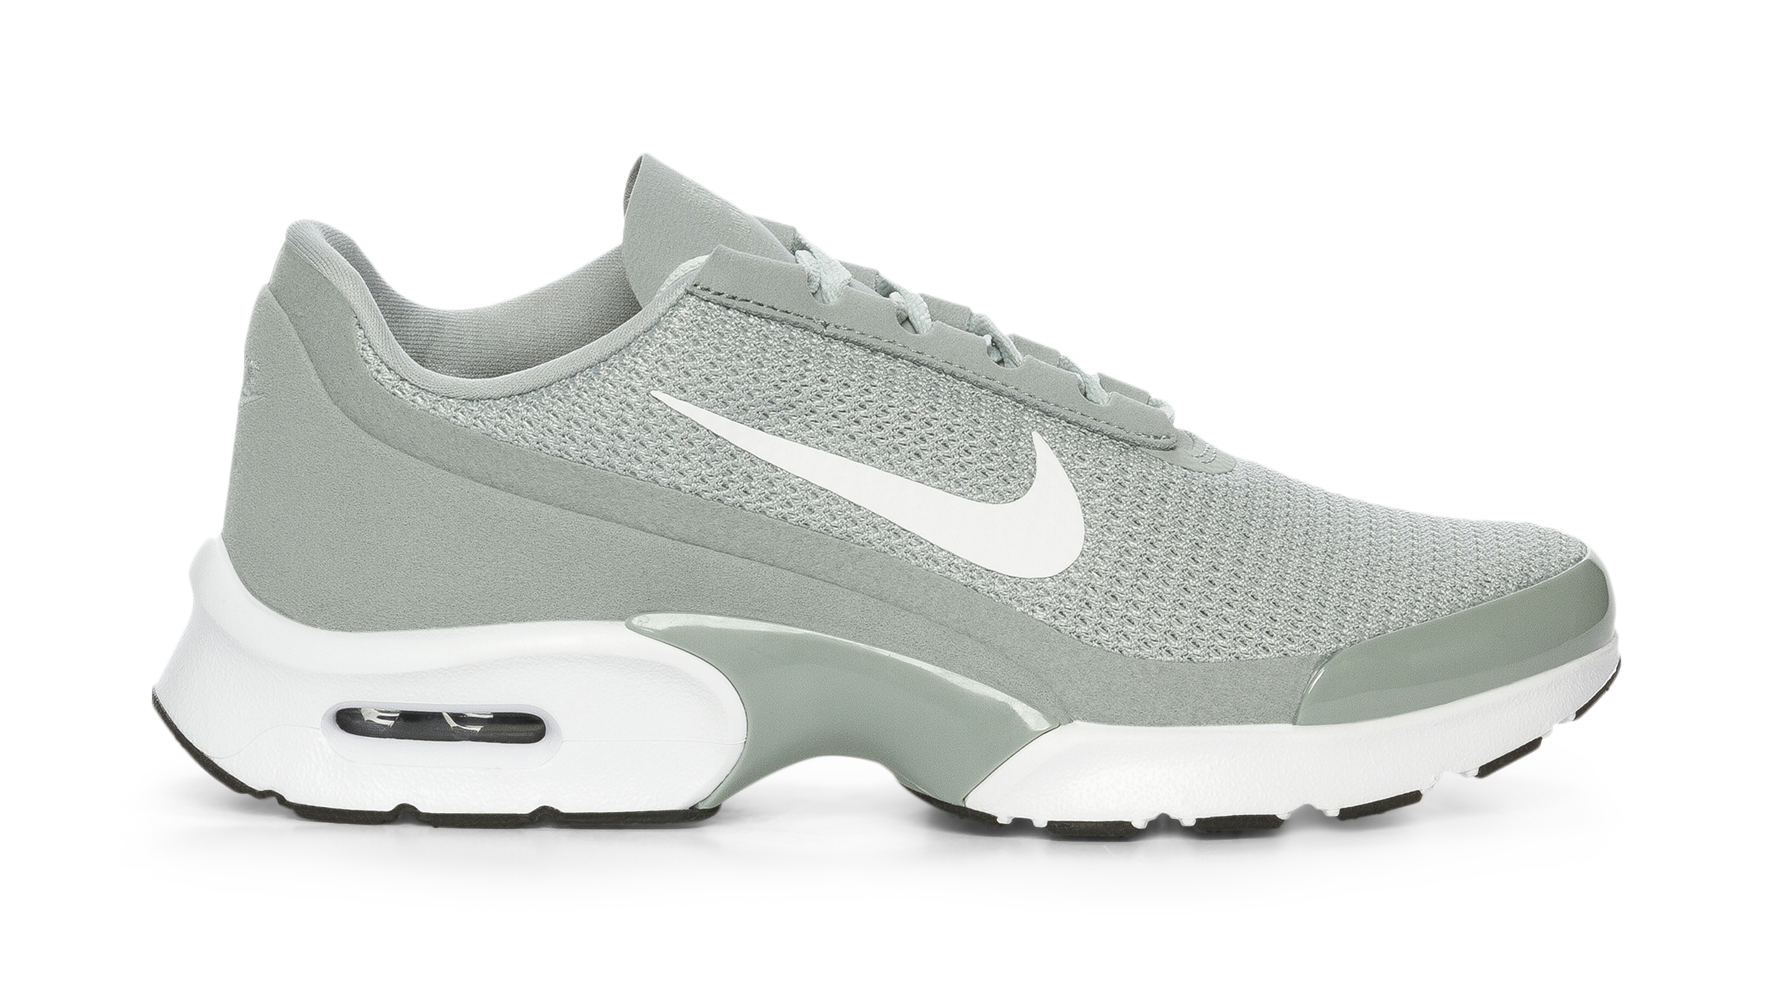 separation shoes 7ee00 6a4ff Nike Air Max Jewell - Harmaa 314039 feetfirst.fi